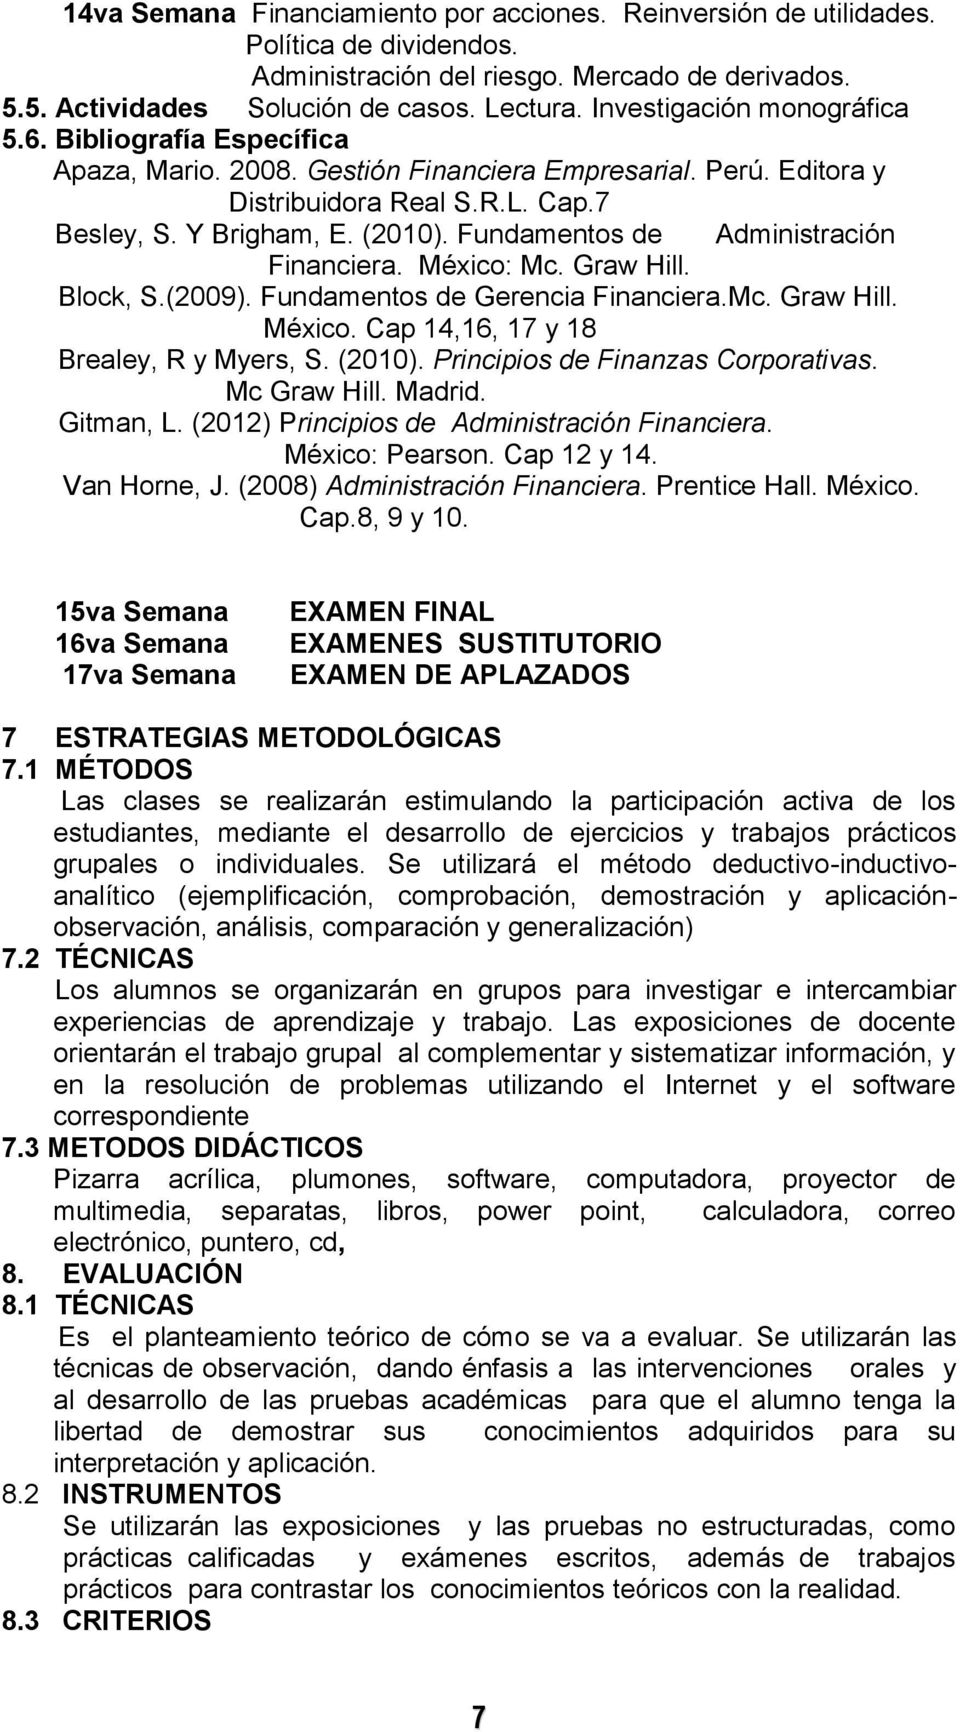 Fundamentos de Administración Financiera. México: Mc. Graw Hill. Block, S.(2009). Fundamentos de Gerencia Financiera.Mc. Graw Hill. México. Cap 14,16, 17 y 18 Brealey, R y Myers, S. (2010).